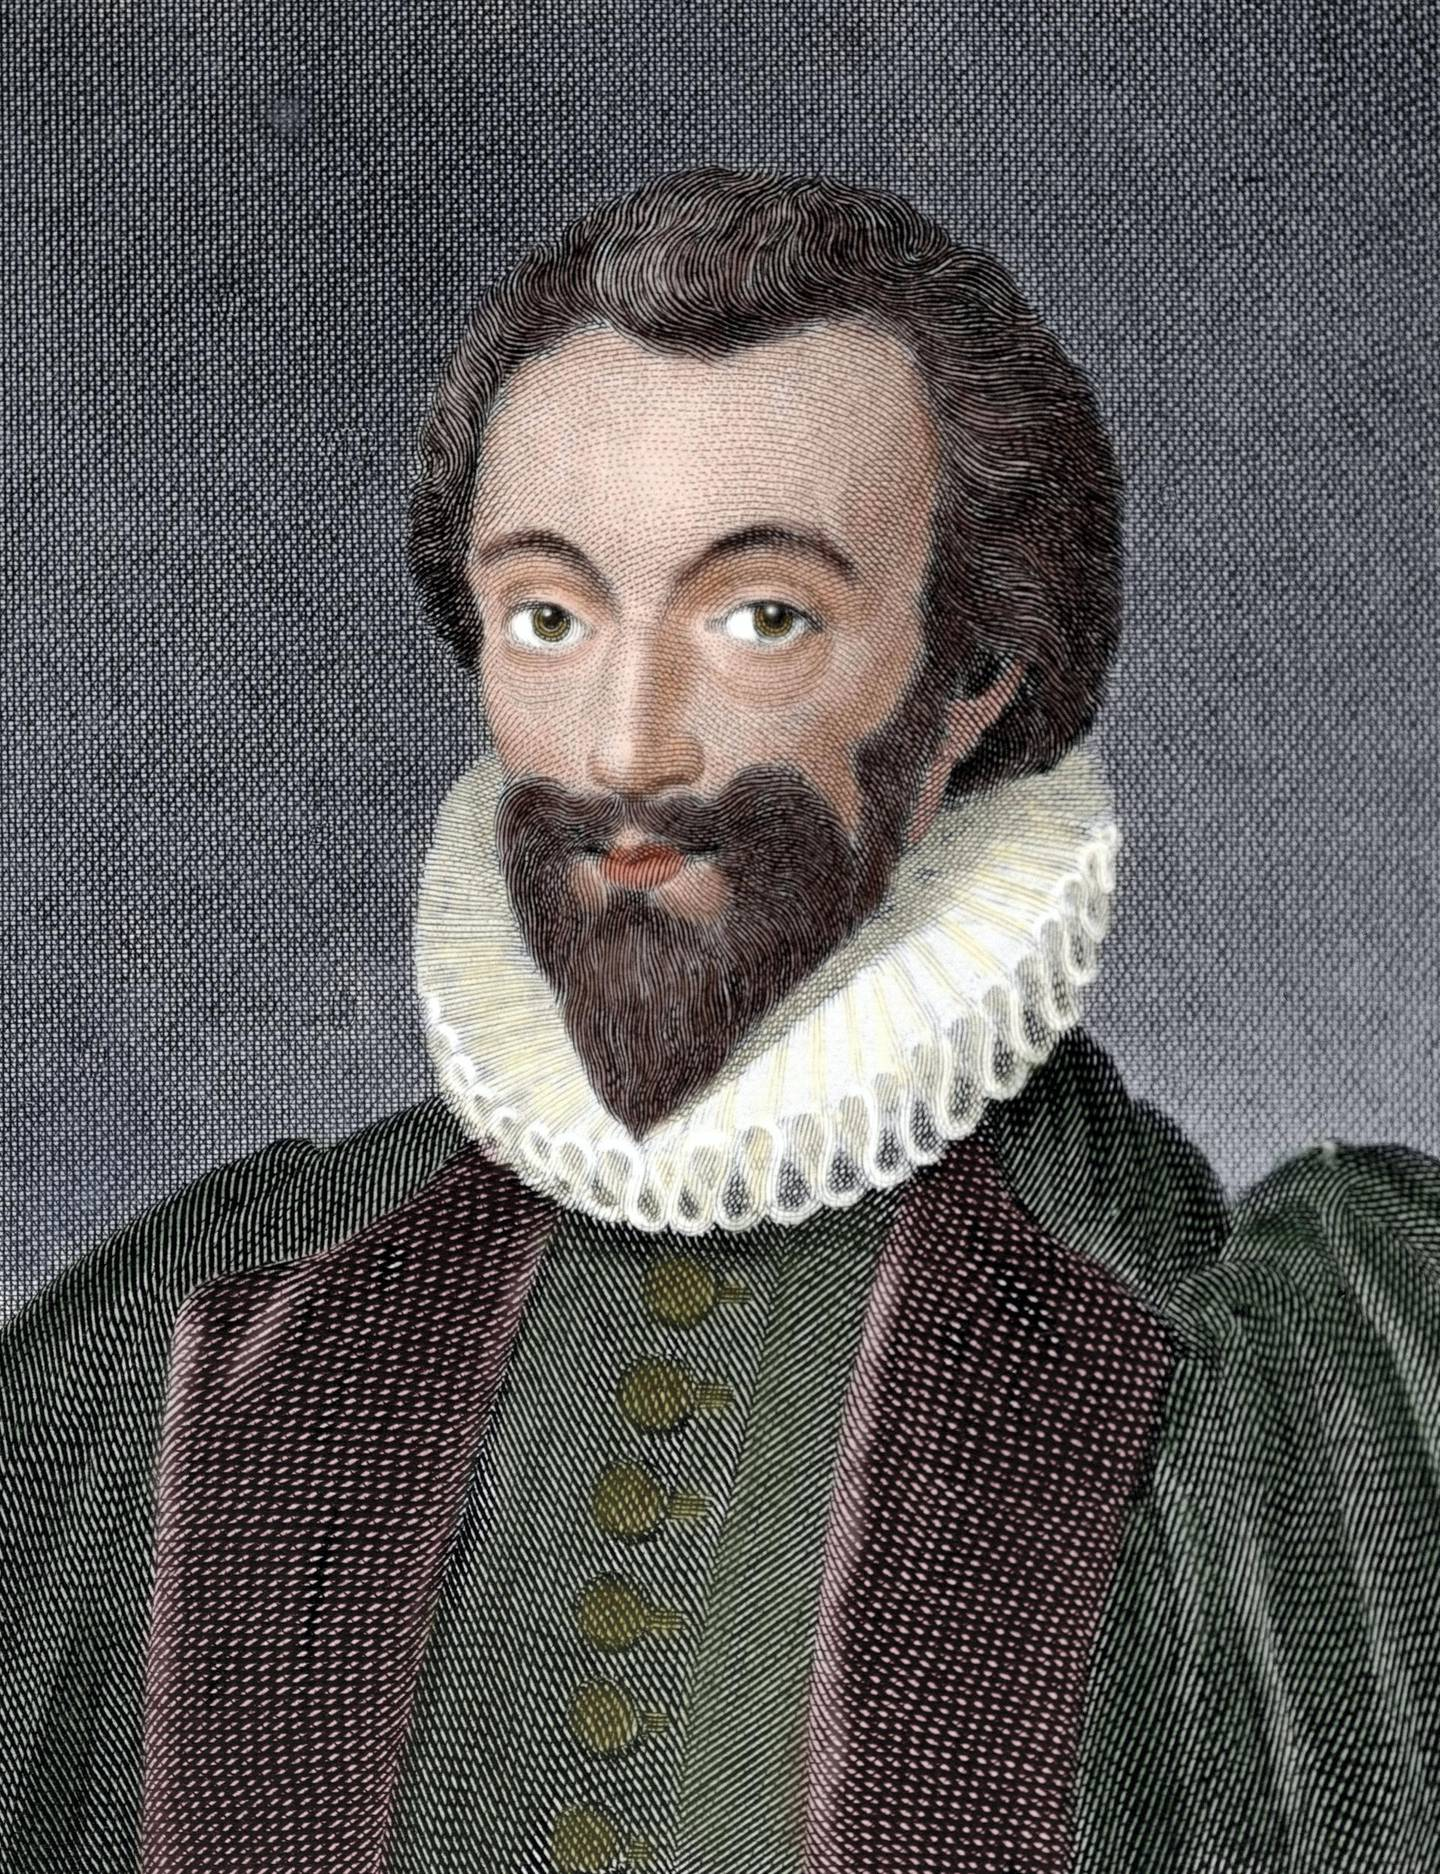 John Donne (1572- 1631) English poet, satirist, lawyer and a cleric in the Church of England. He is considered the pre-eminent representative of the metaphysical poets. Engraving by W. Bromley. Colored. (Photo by Ipsumpix/Corbis via Getty Images)